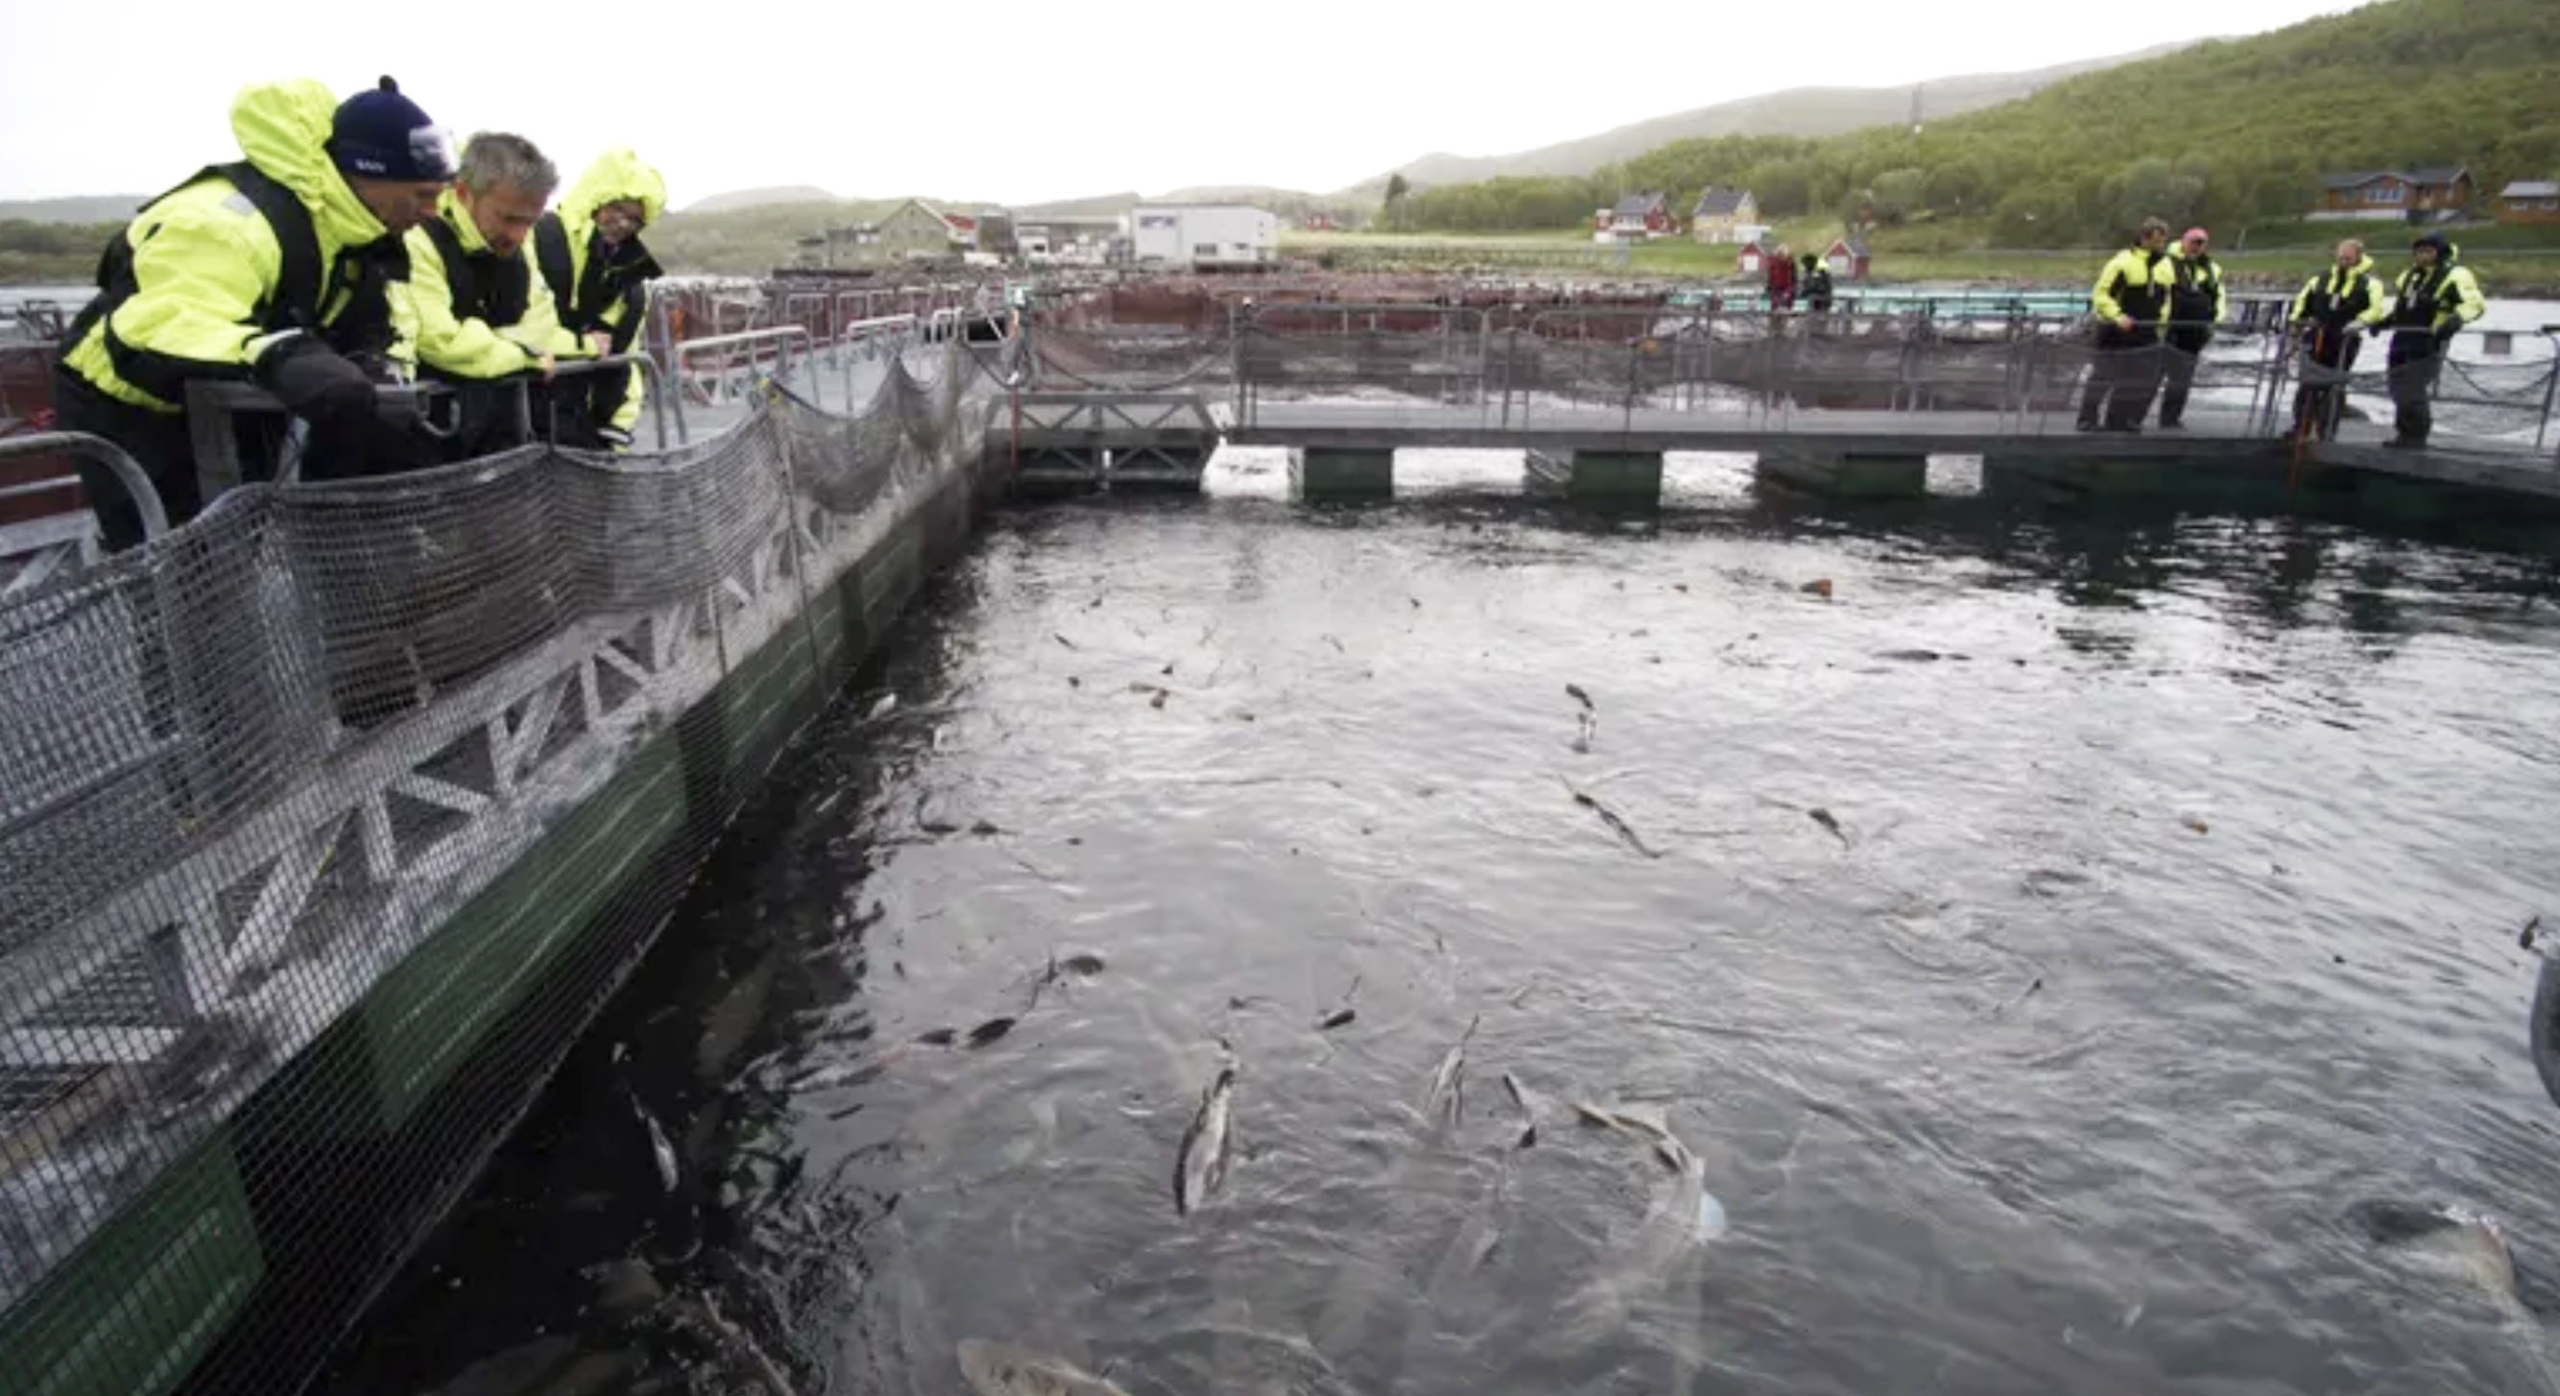 Norcod in the news, 6th generation of cod fry